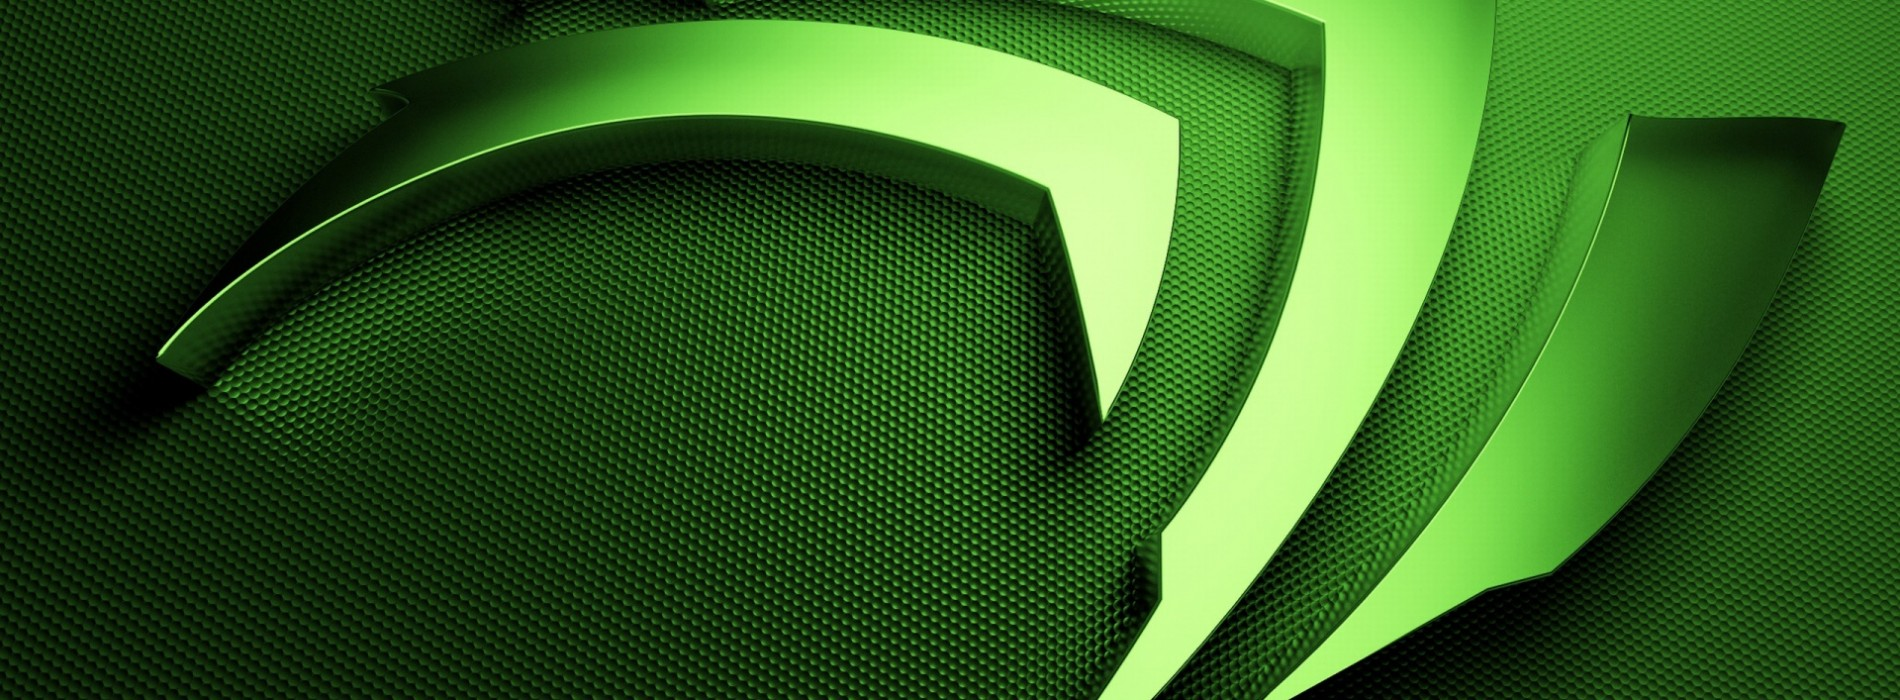 NVIDIA reportedly readying Tegra K1-powered Shield tablet